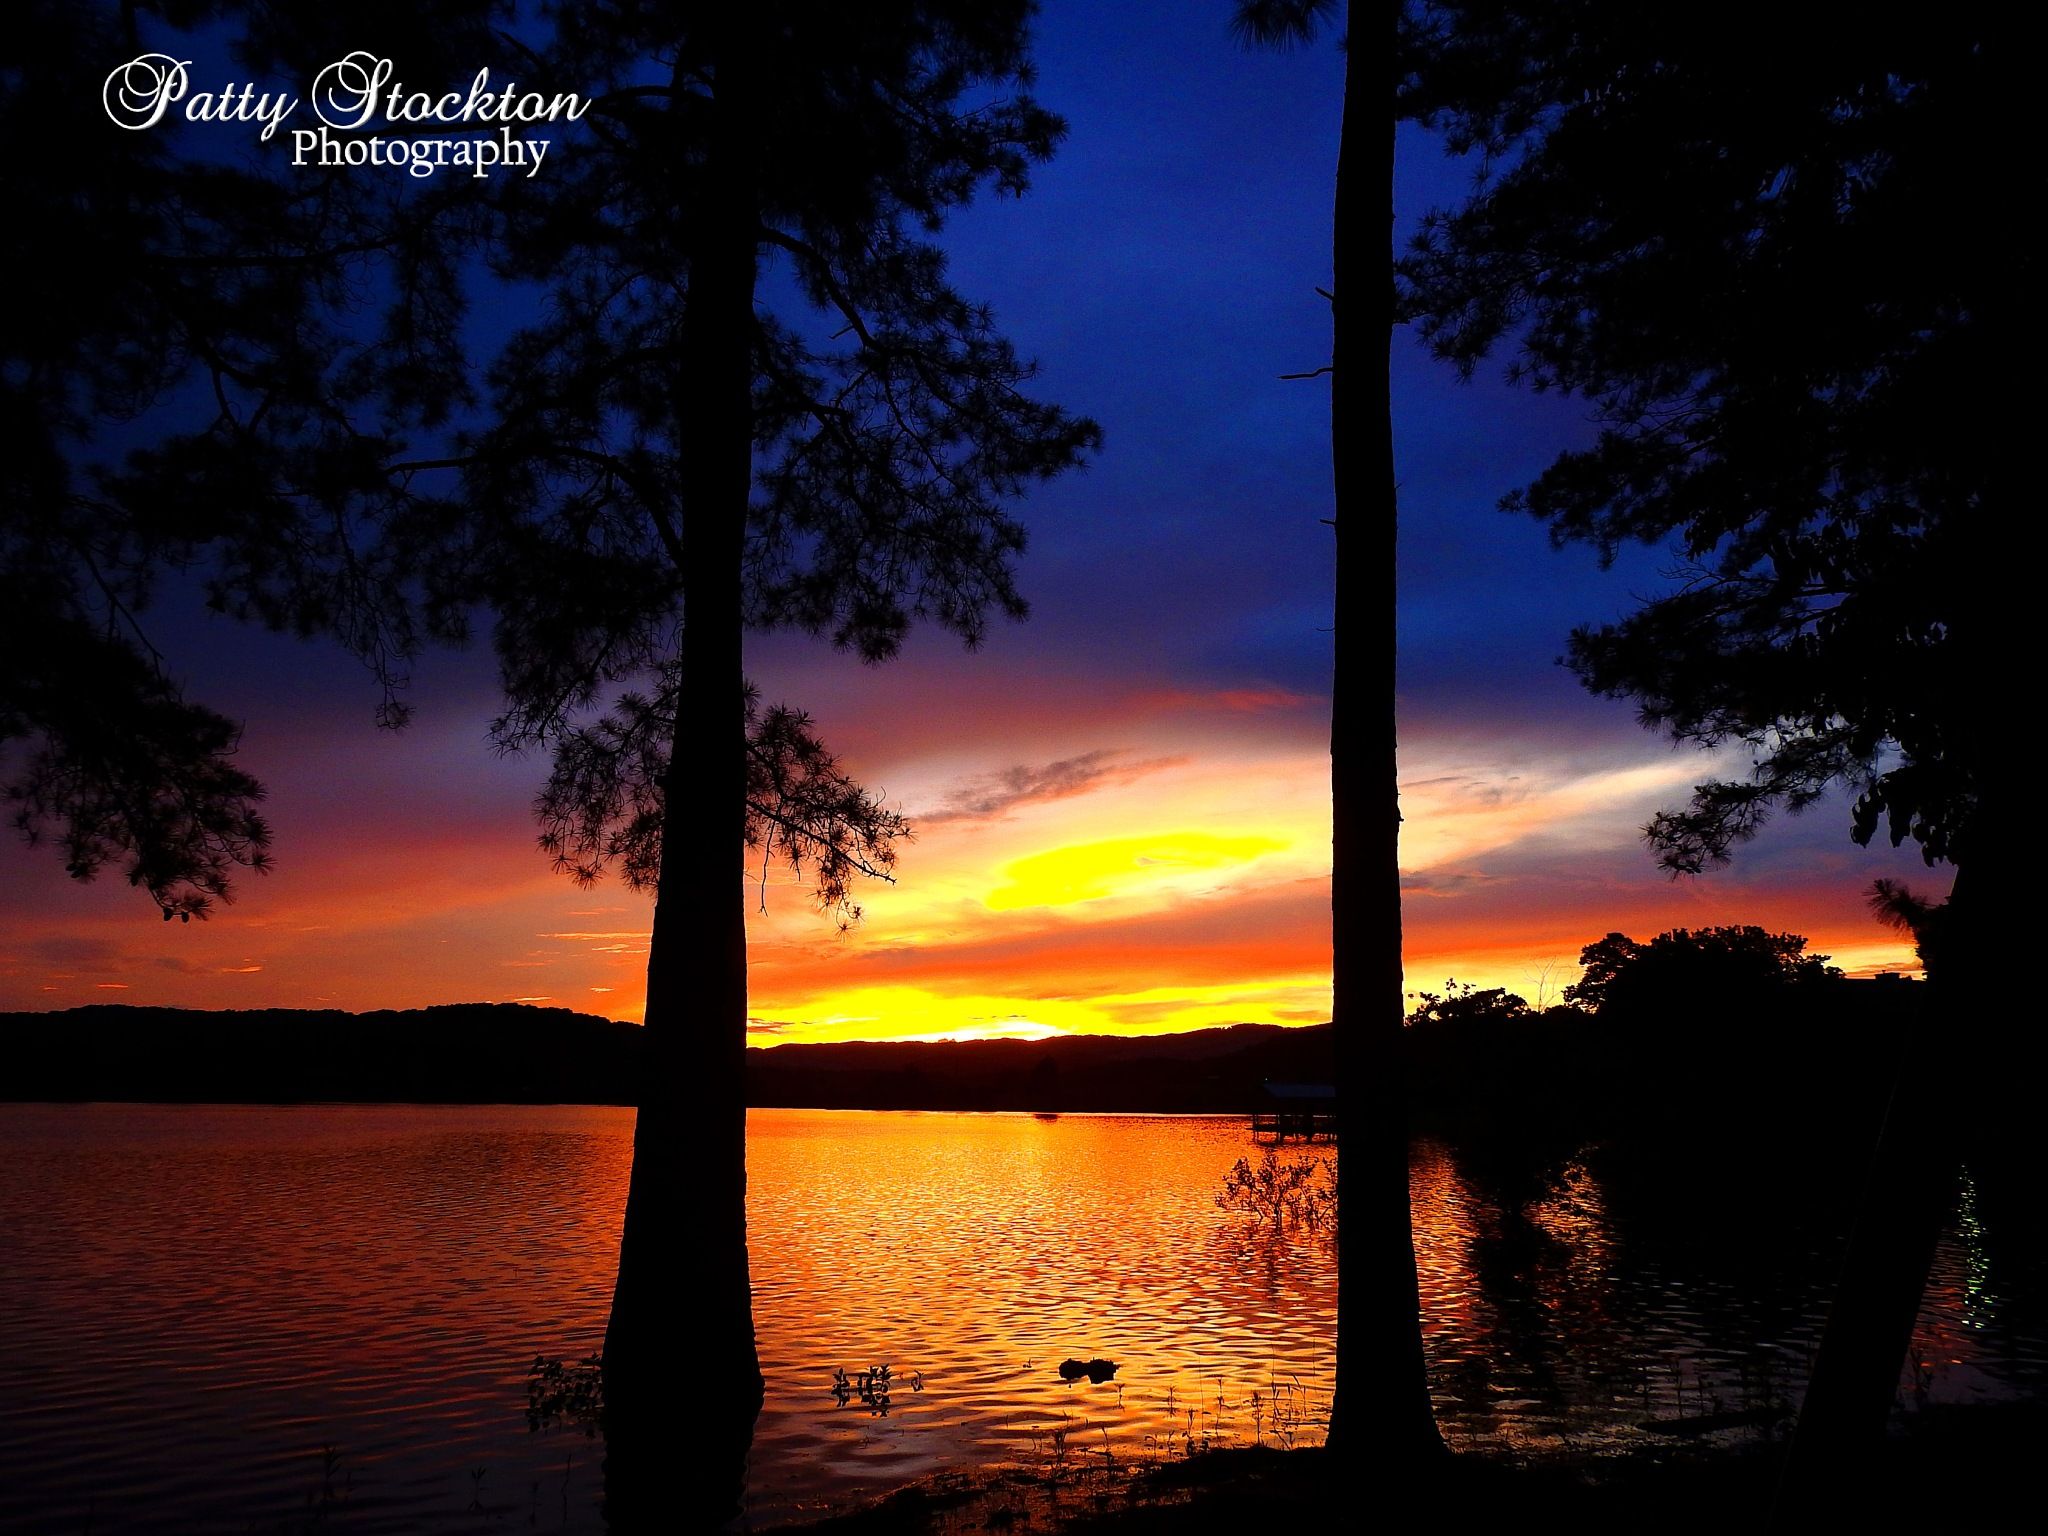 Sunset on Cherokee Lake by Patty Stockton